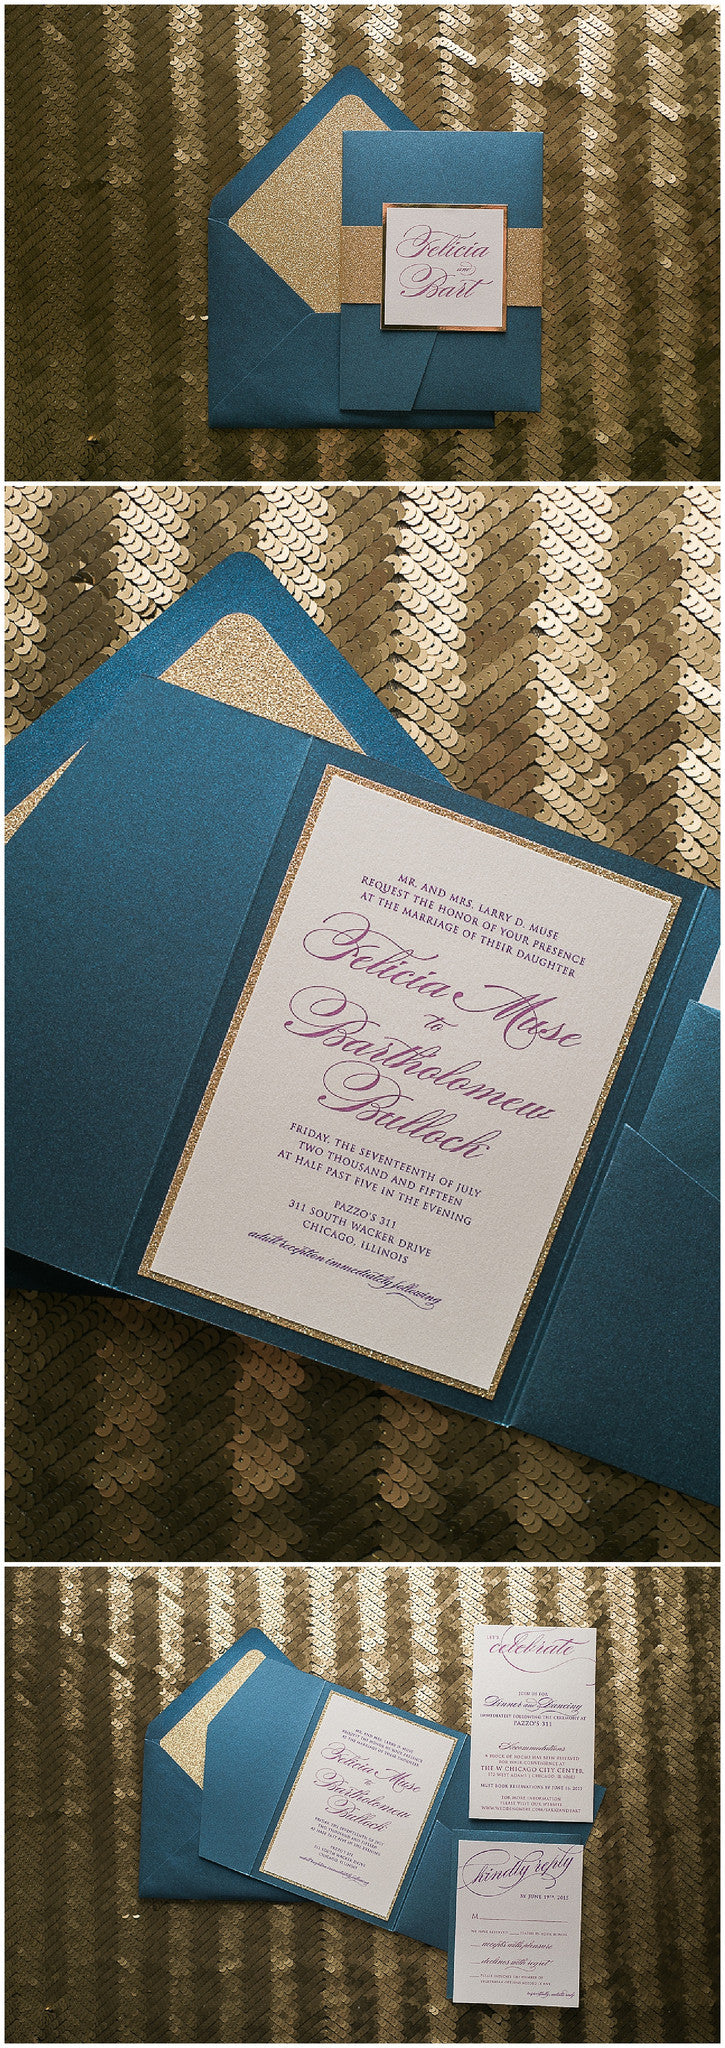 Elegant Calligraphy Wedding Invitations, Digital Printing, Fuchsia Digital Printing, Pocket Folder Wedding Invitations, Glitter, Gold Glitter, Navy and Gold, Just Invite Me, Wedding Invitations